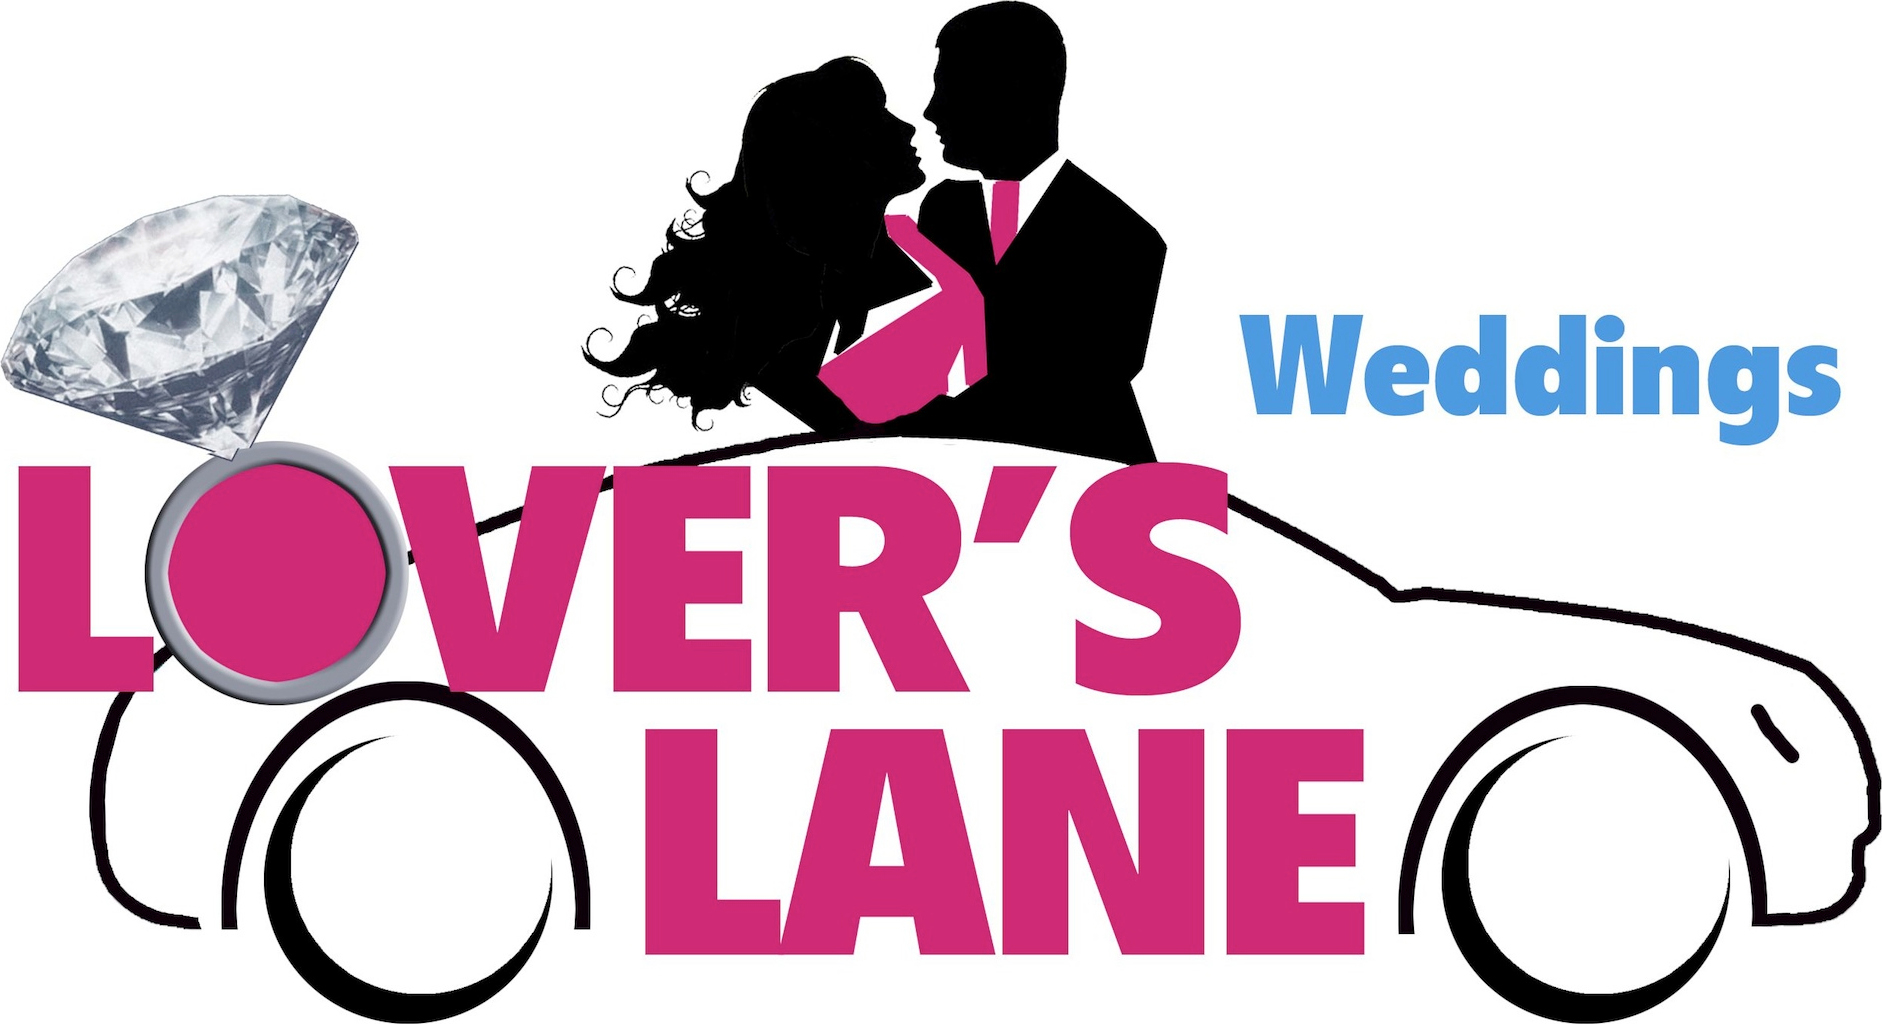 Lover's Lane Weddings in Myrtle Beach, South Carolina